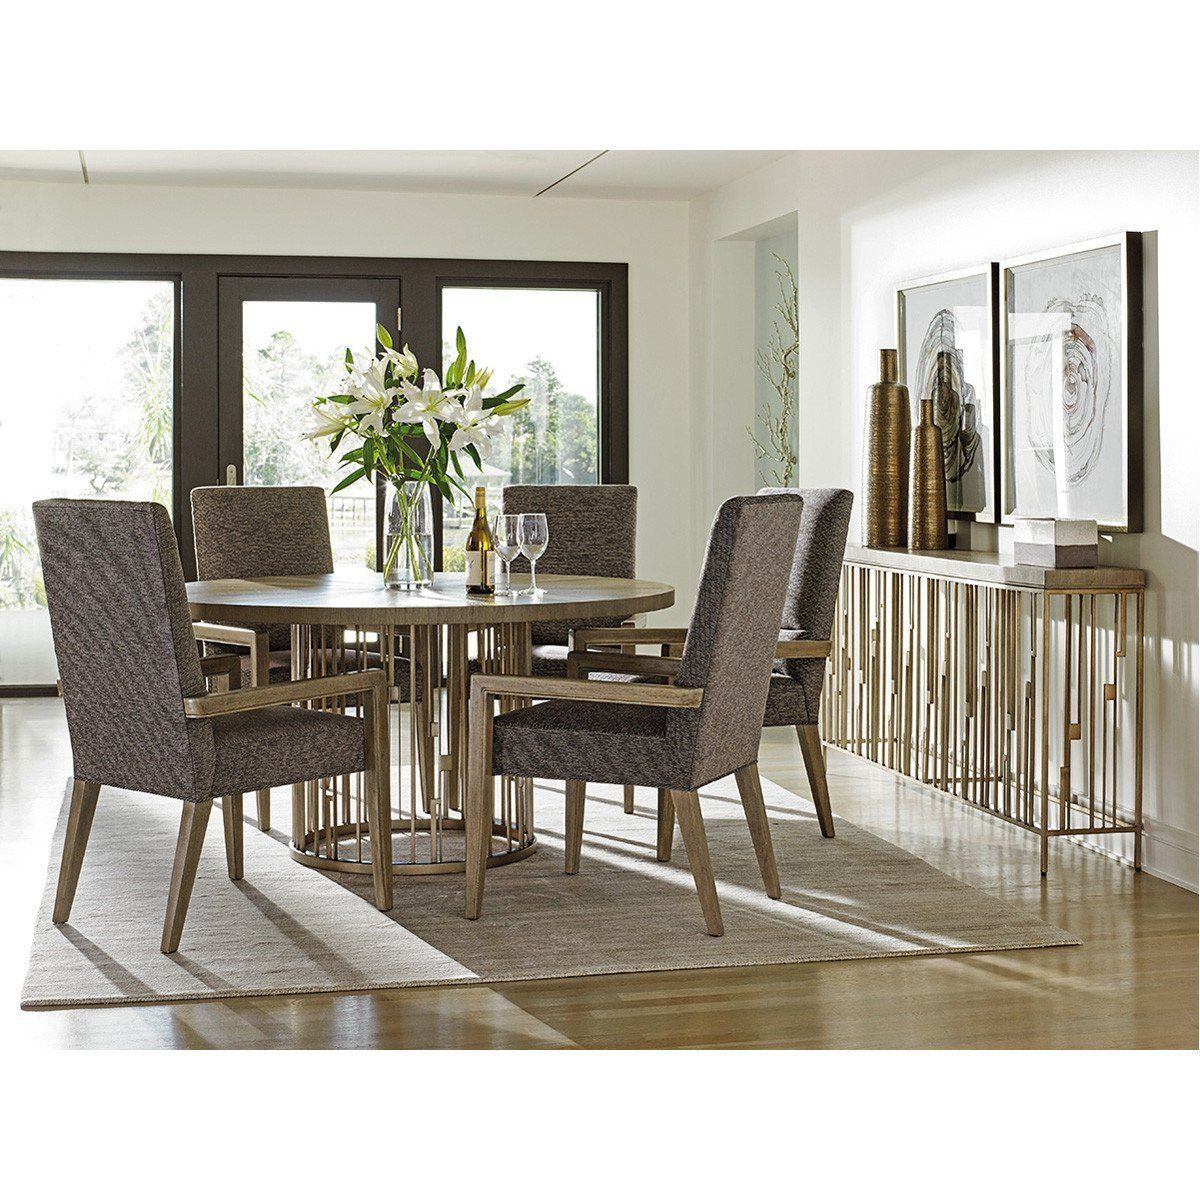 Lexington Shadow Play Studio Console Round Wood Dining Table